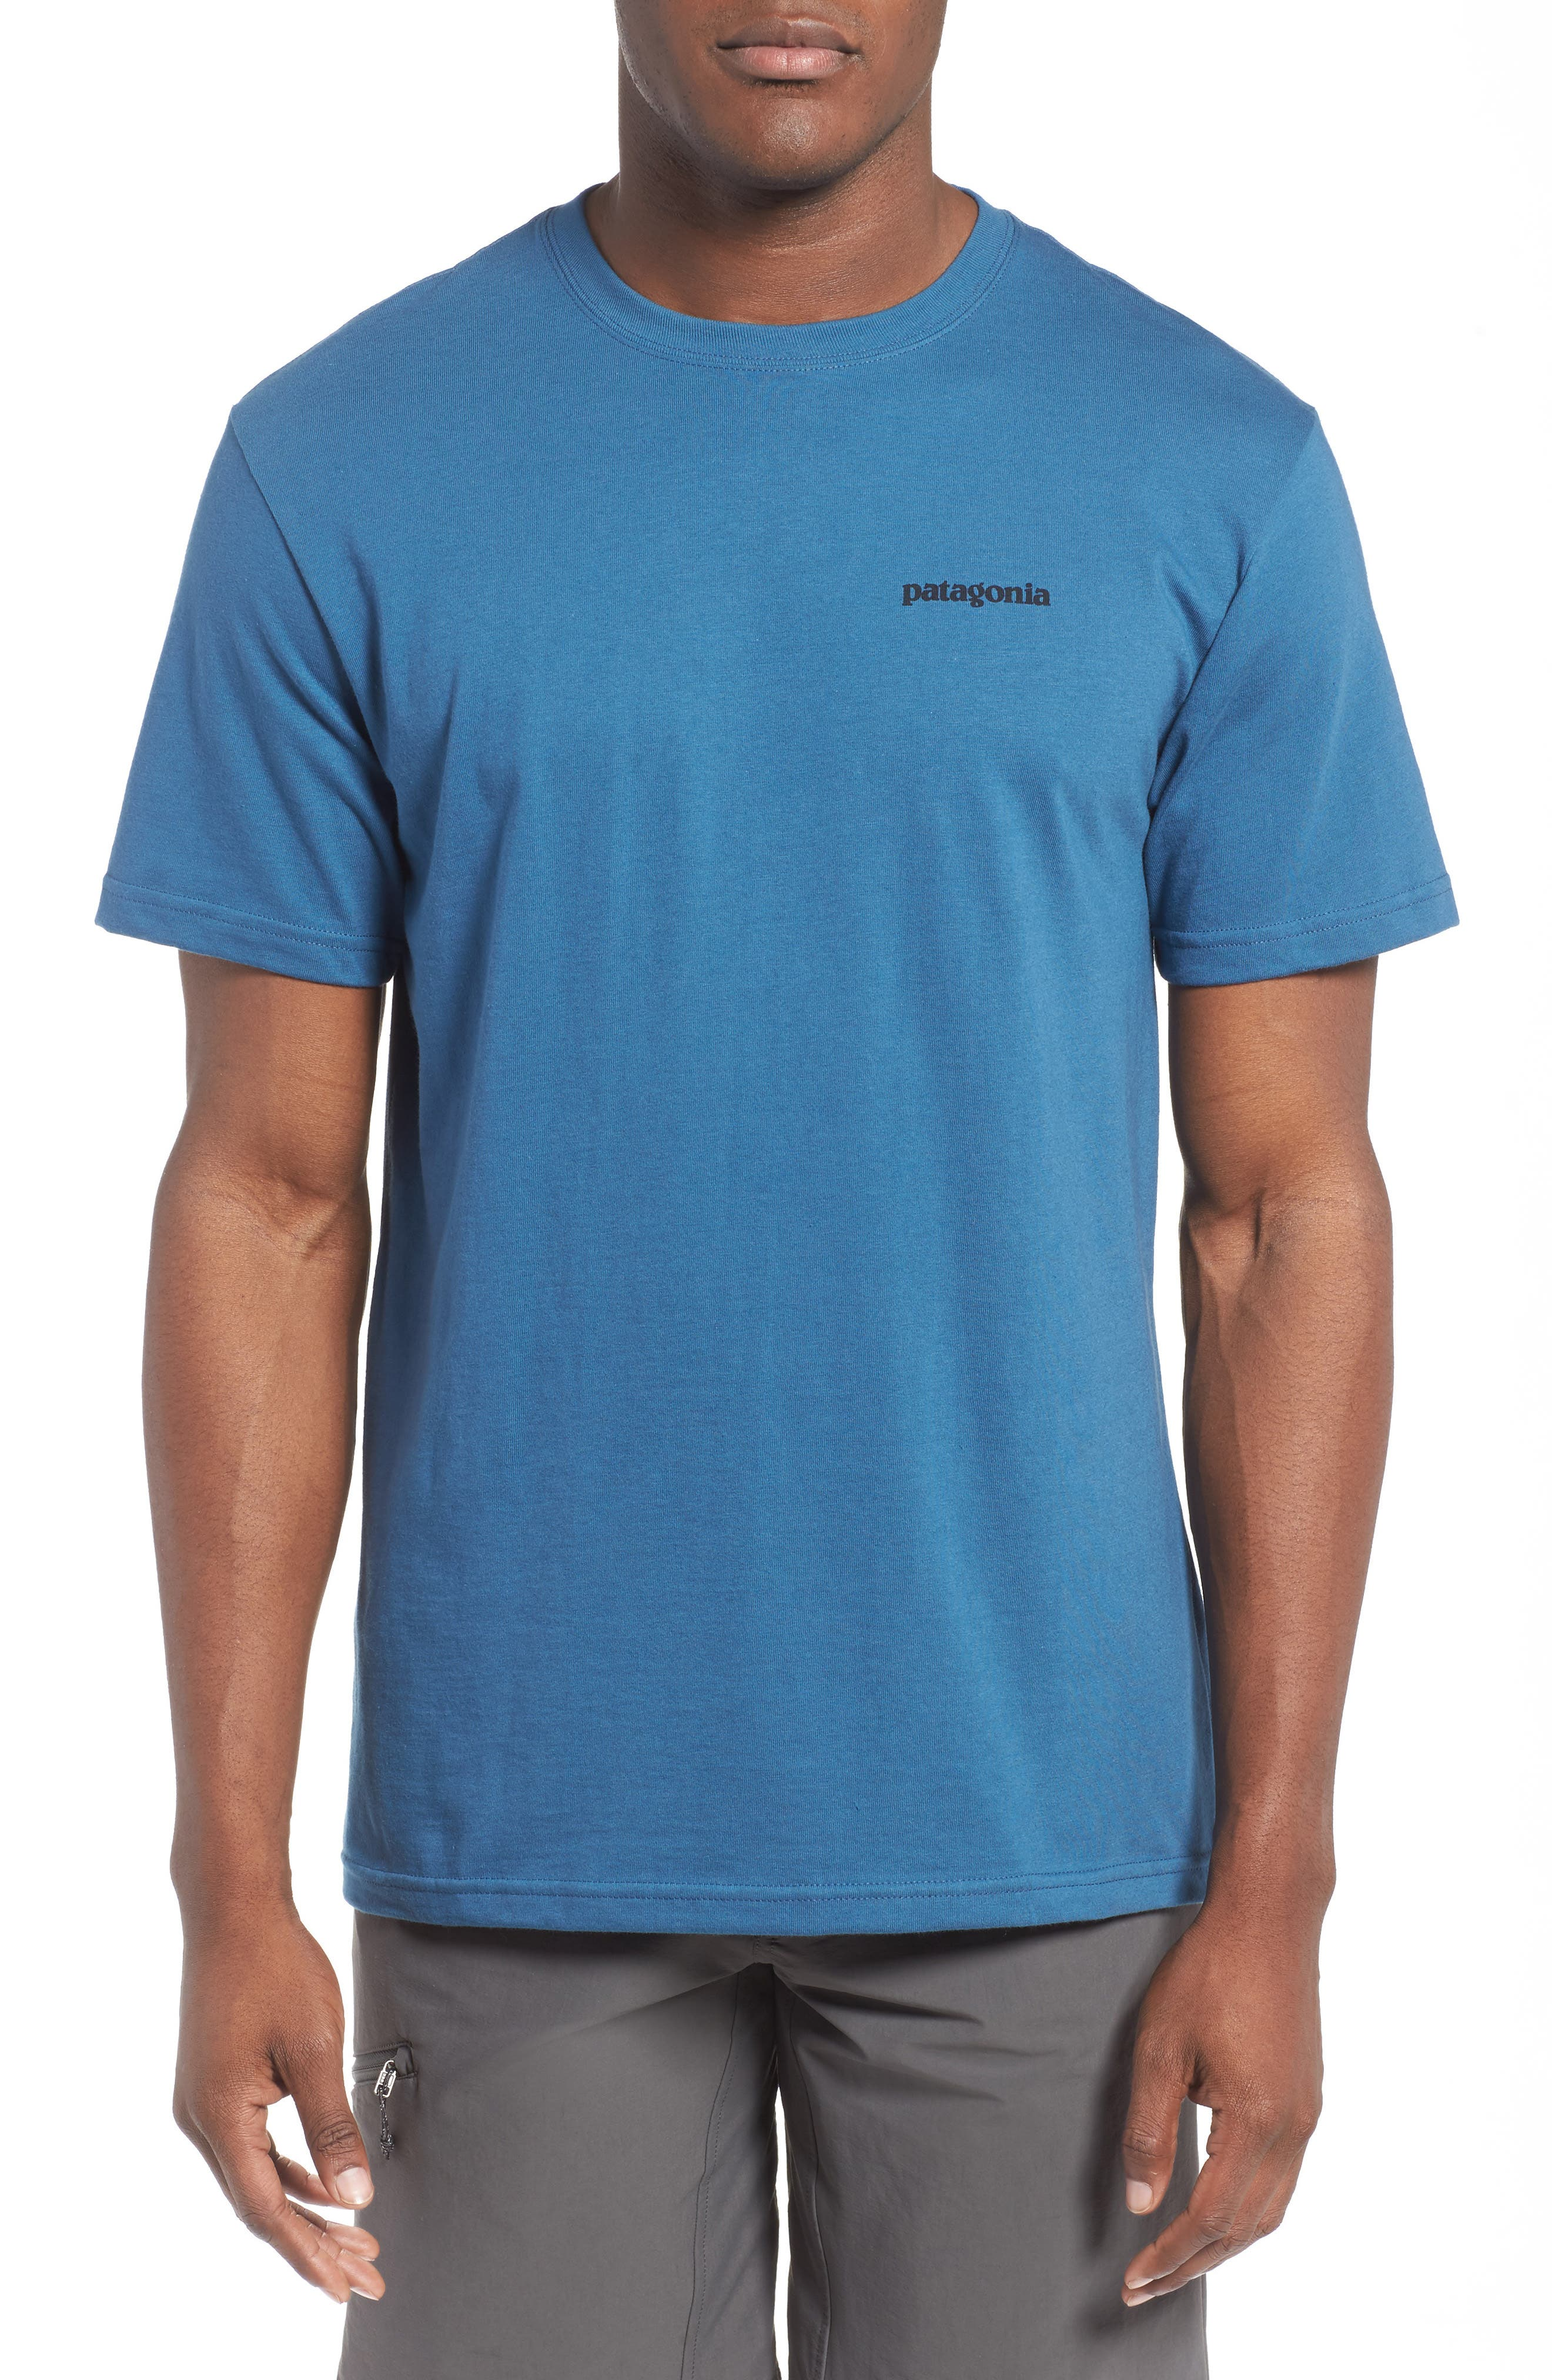 Alternate Image 2  - Patagonia 'P-6 Logo' Organic Cotton T-Shirt